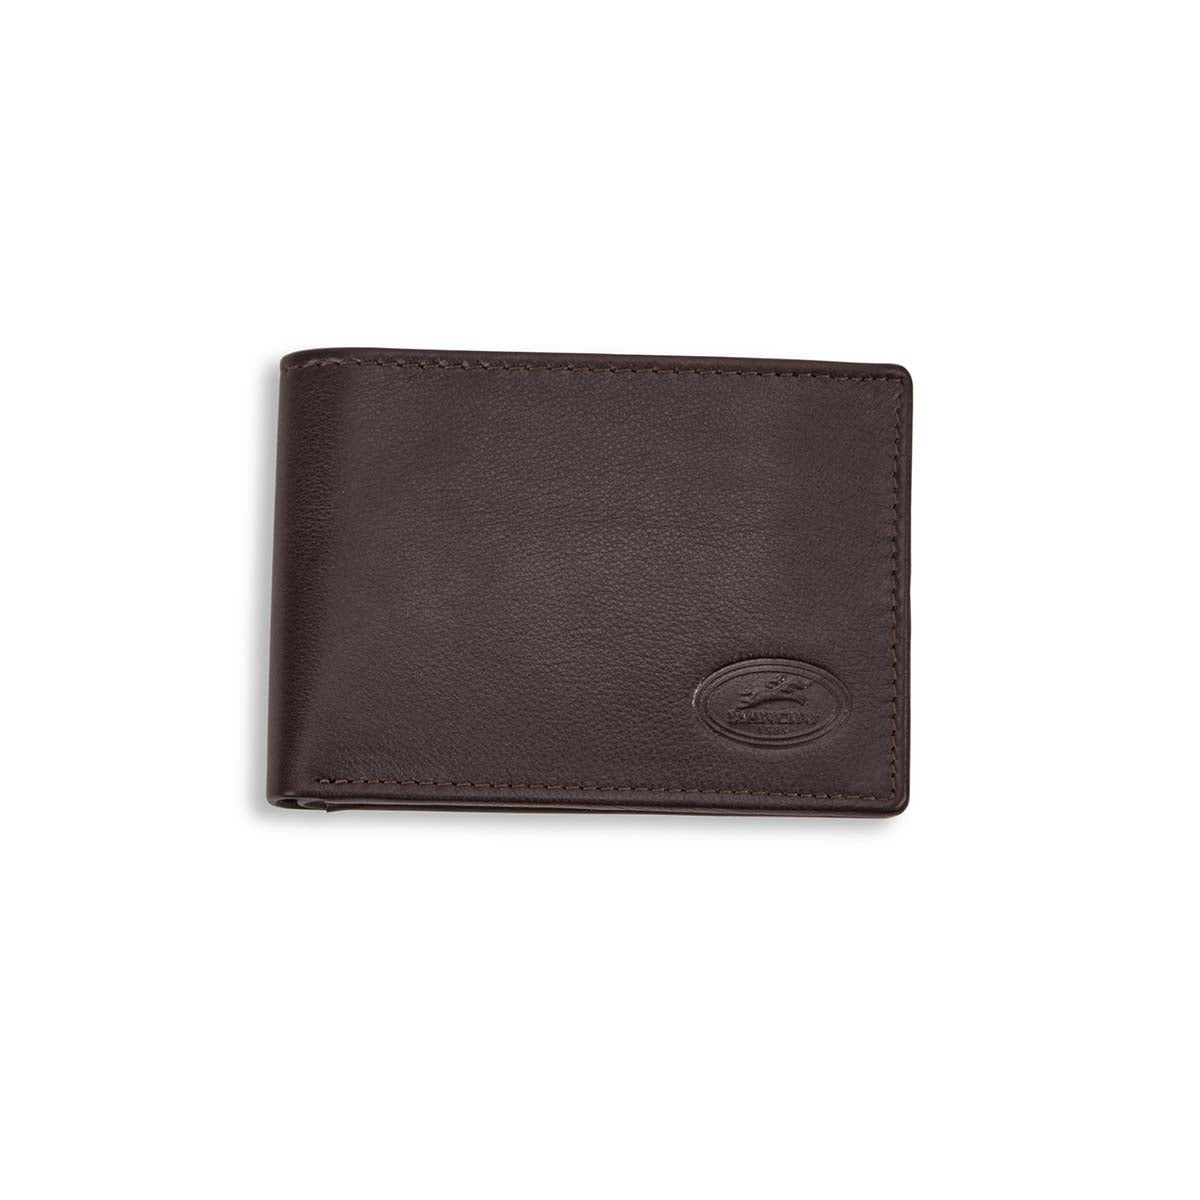 Mns classic brown RFID secure wallet